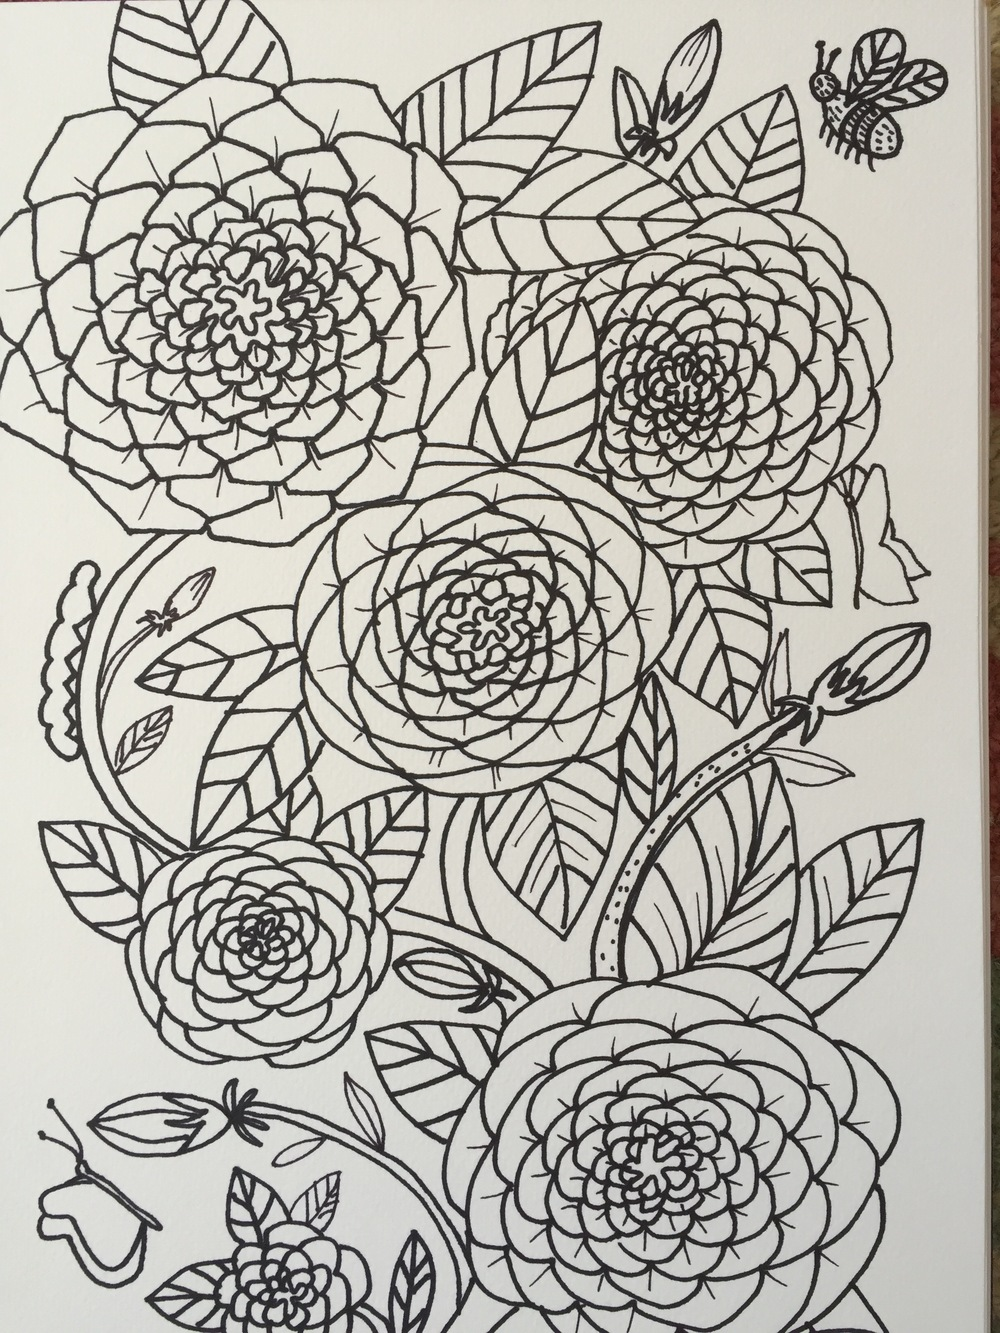 Personal coloring page created by Jean Frank-Stark